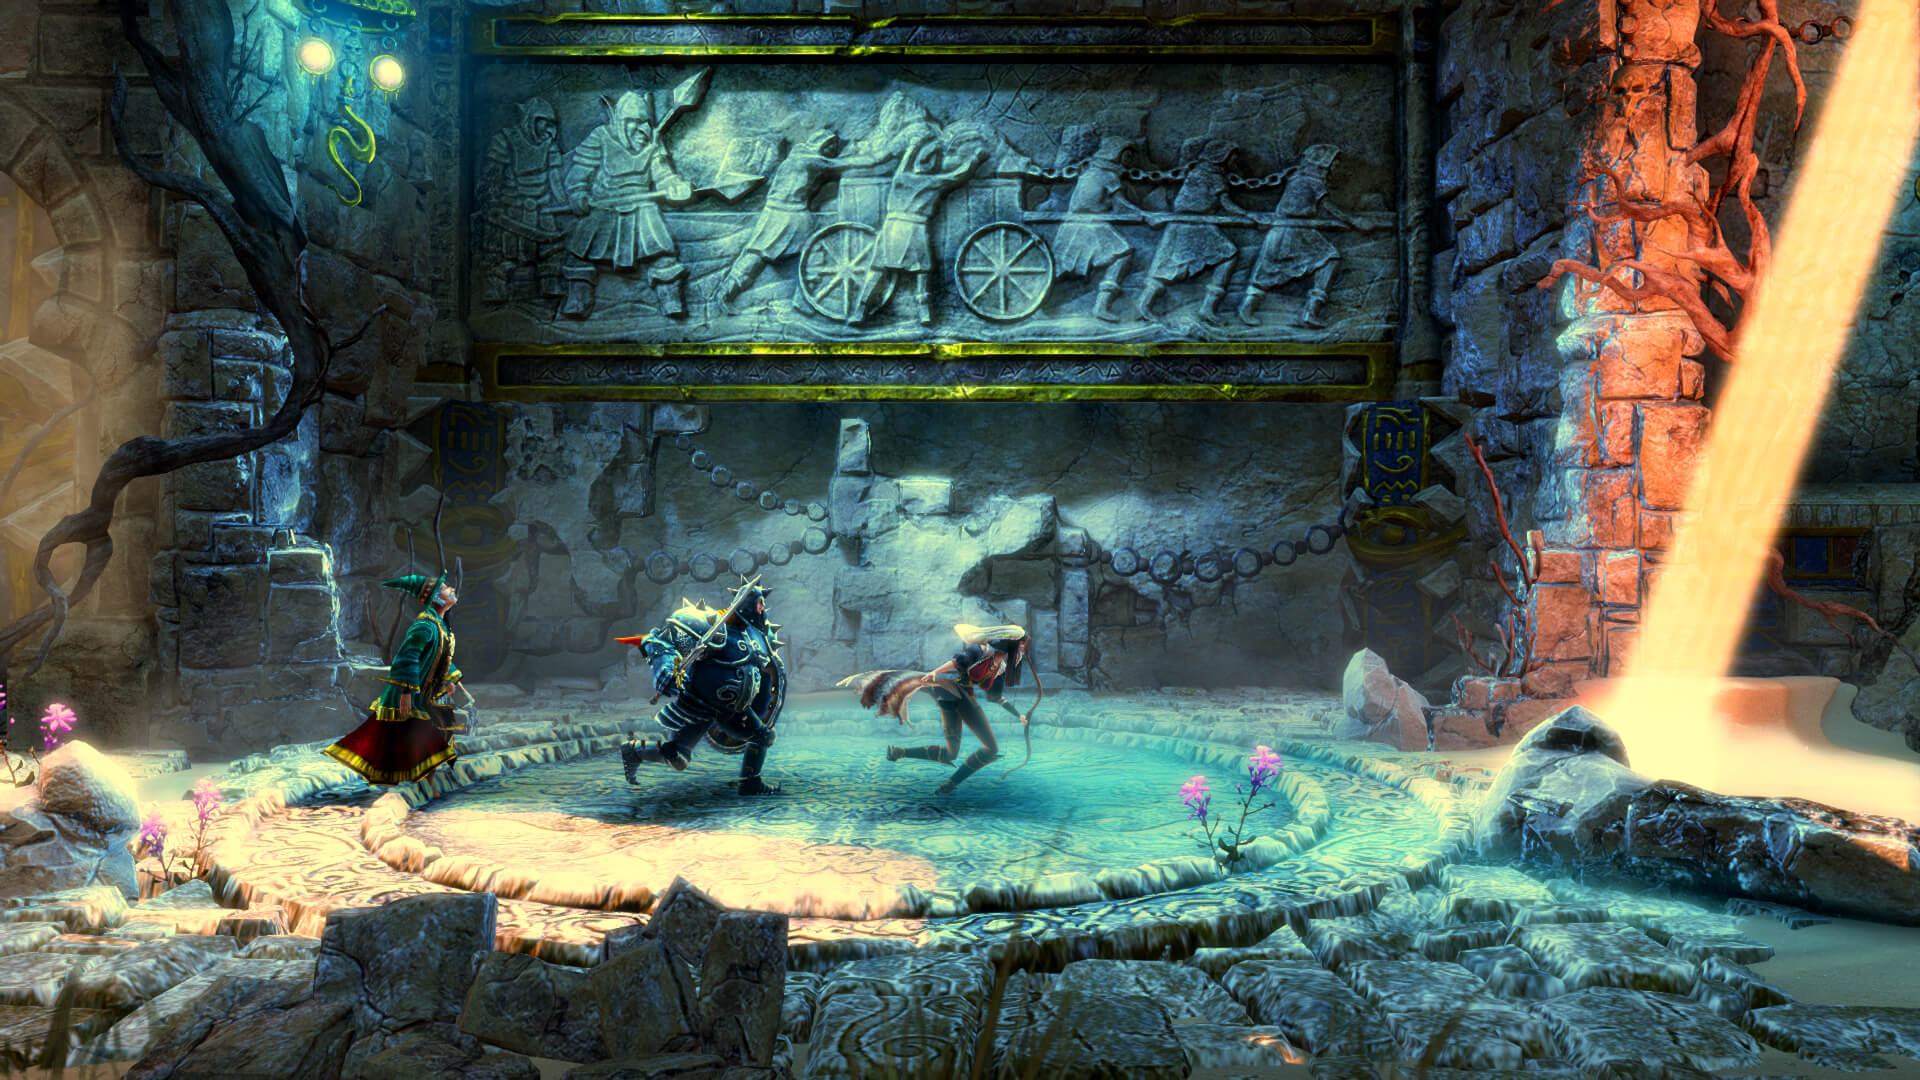 Trine 2 Cheats and Trainers - Video Games, Wikis, Cheats